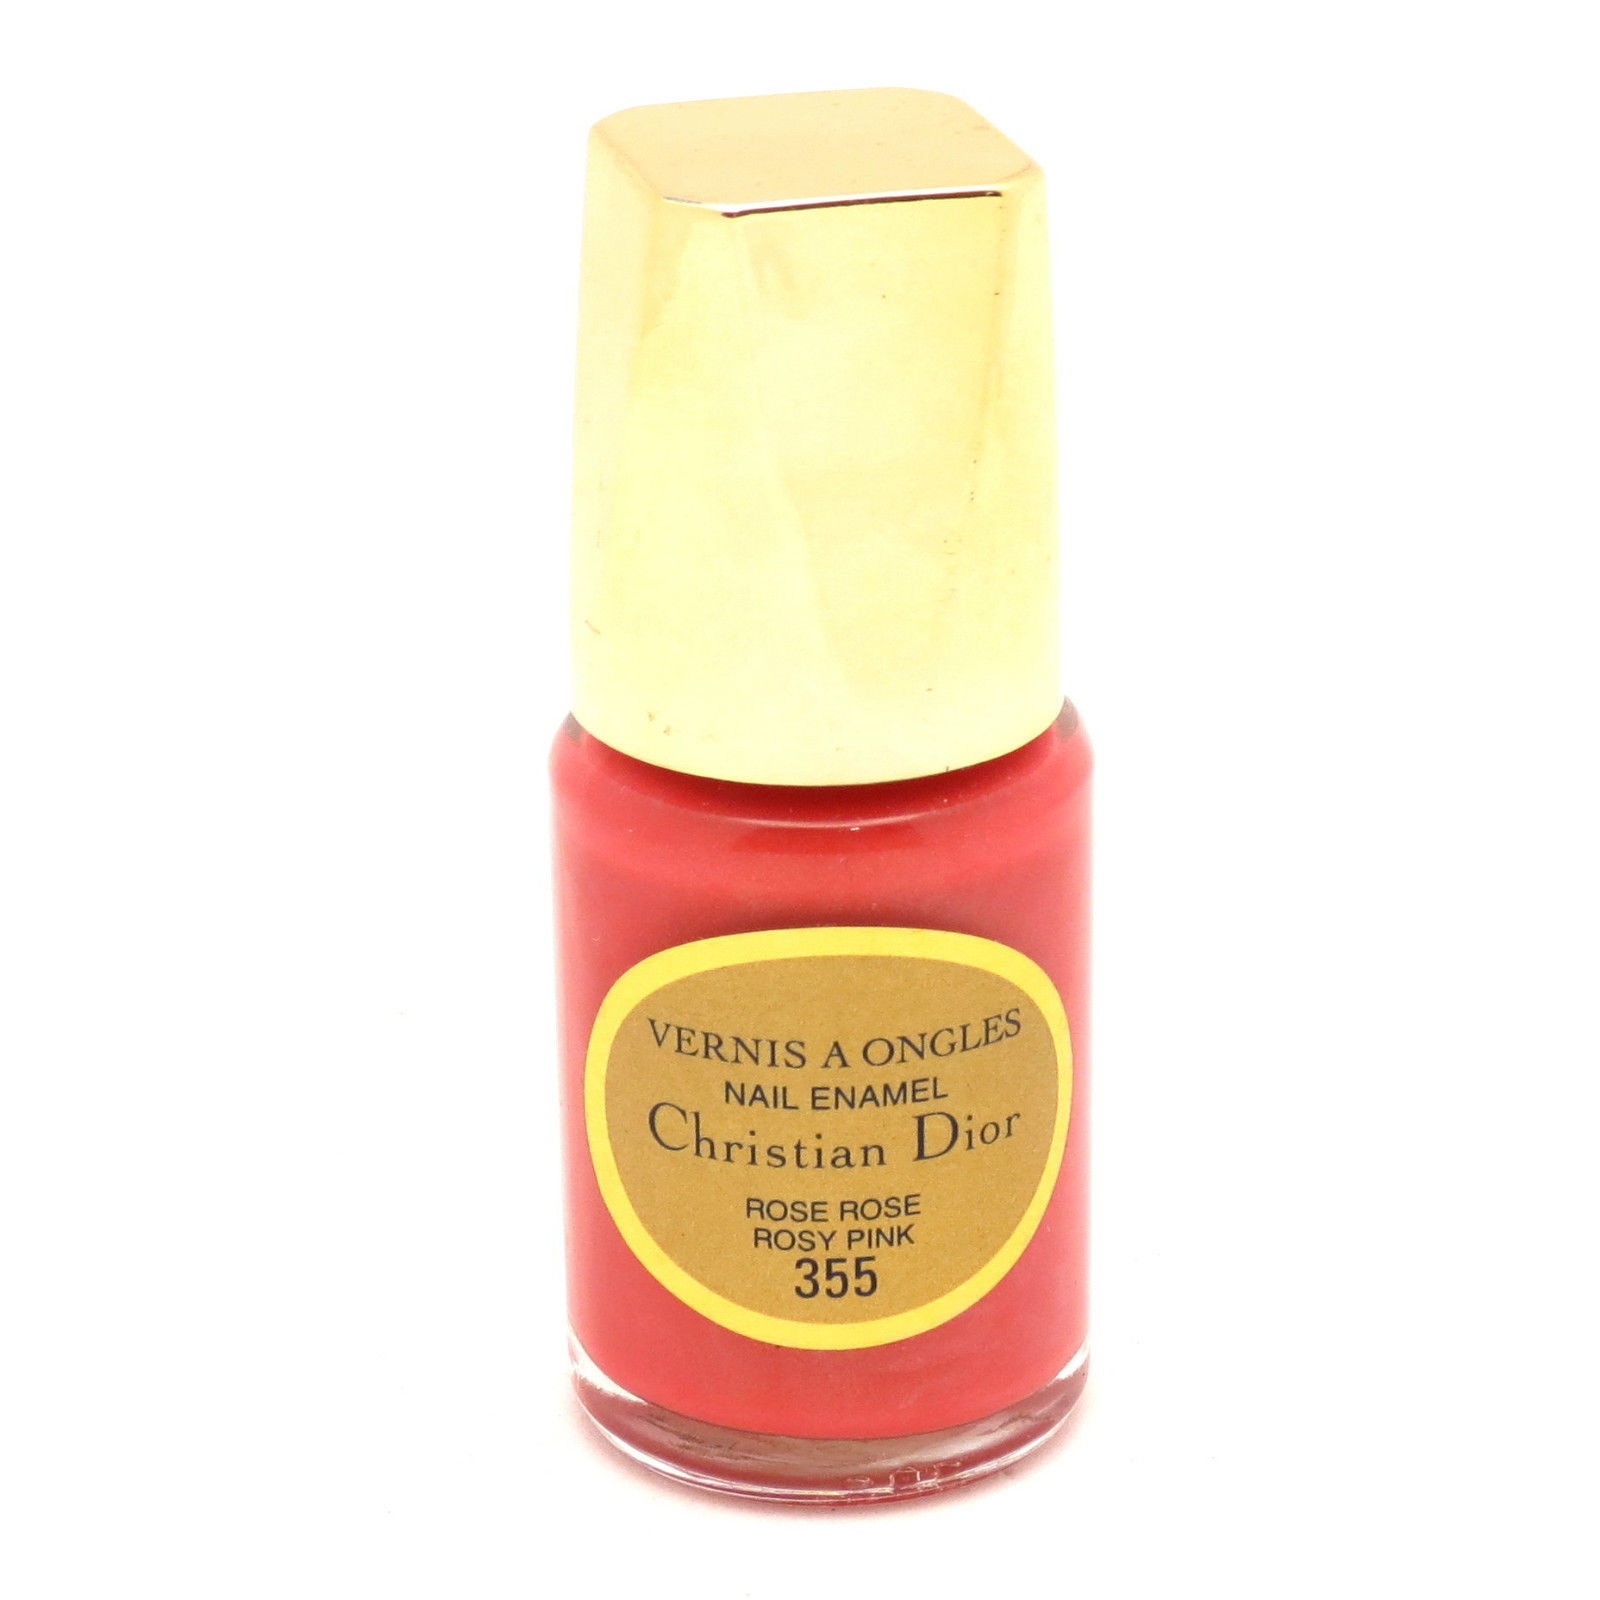 Christian Dior Vernis A Ongles Nail Enamel Unboxed